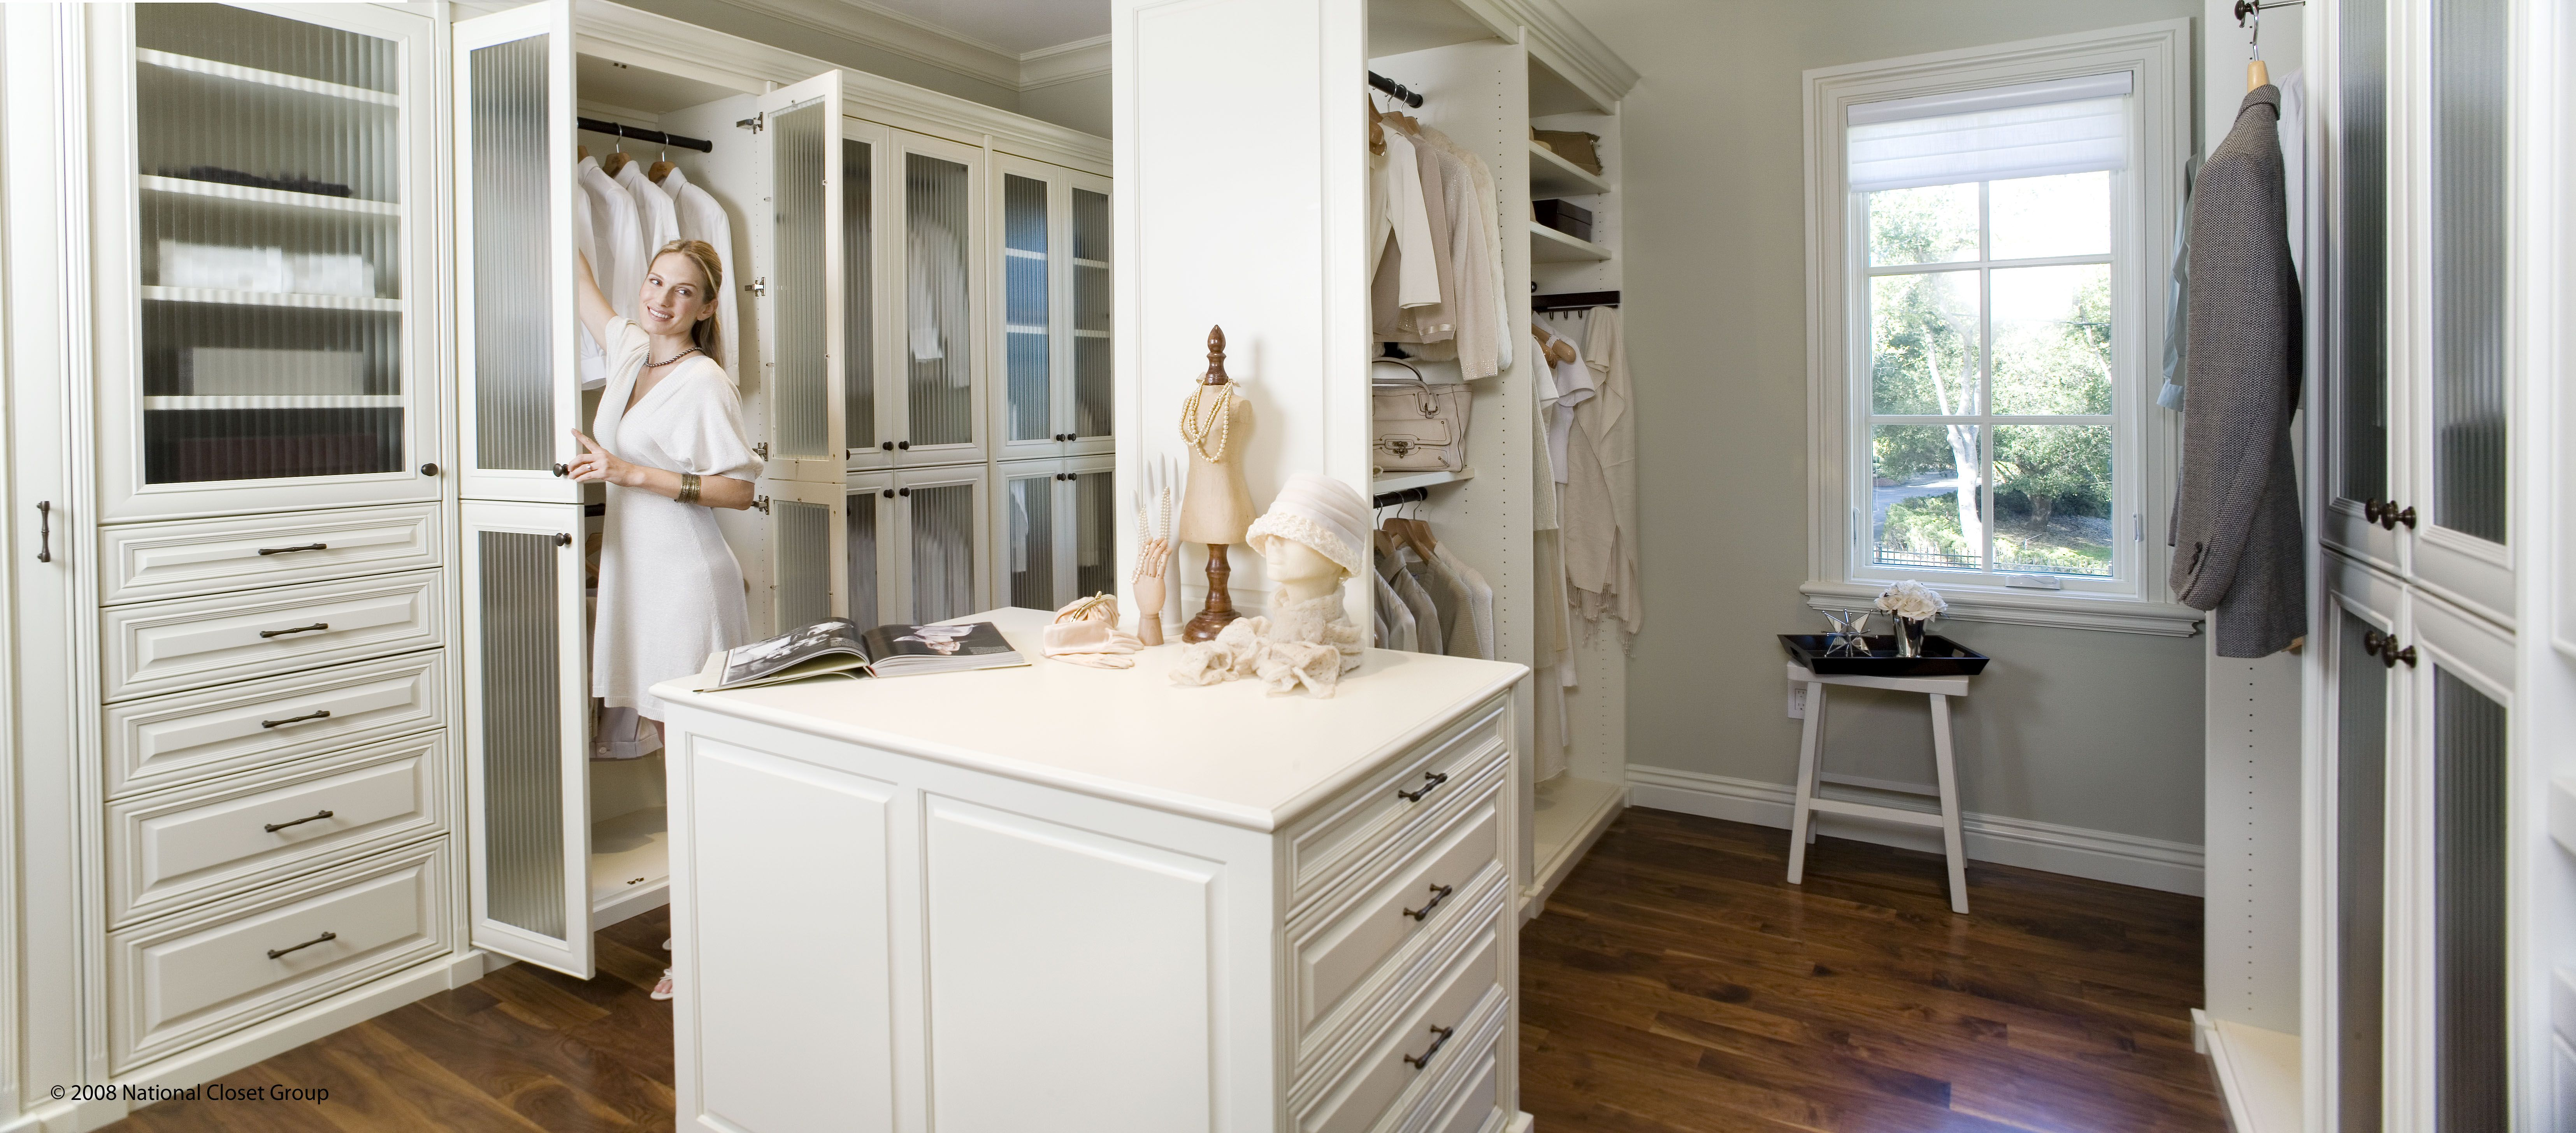 Siena Collection Closets At Twin Cities Closet Co.